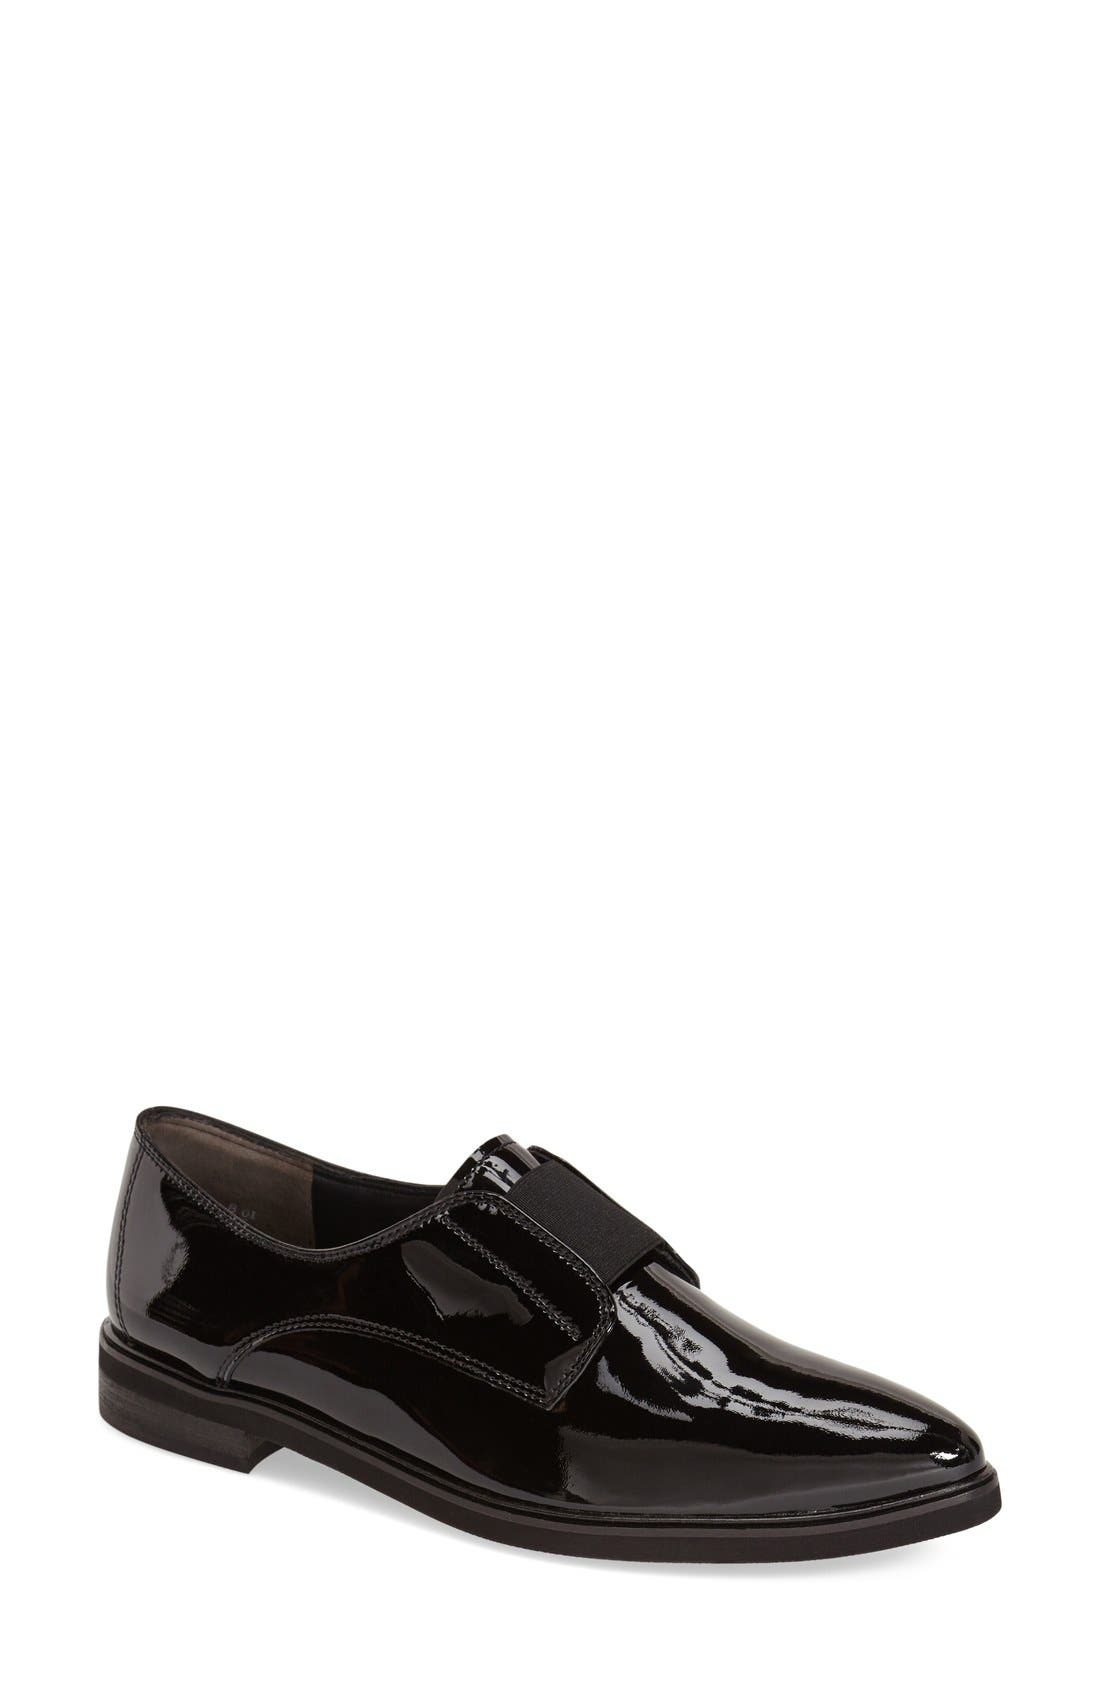 Main Image - Paul Green 'Evana' Oxford Loafer (Women)